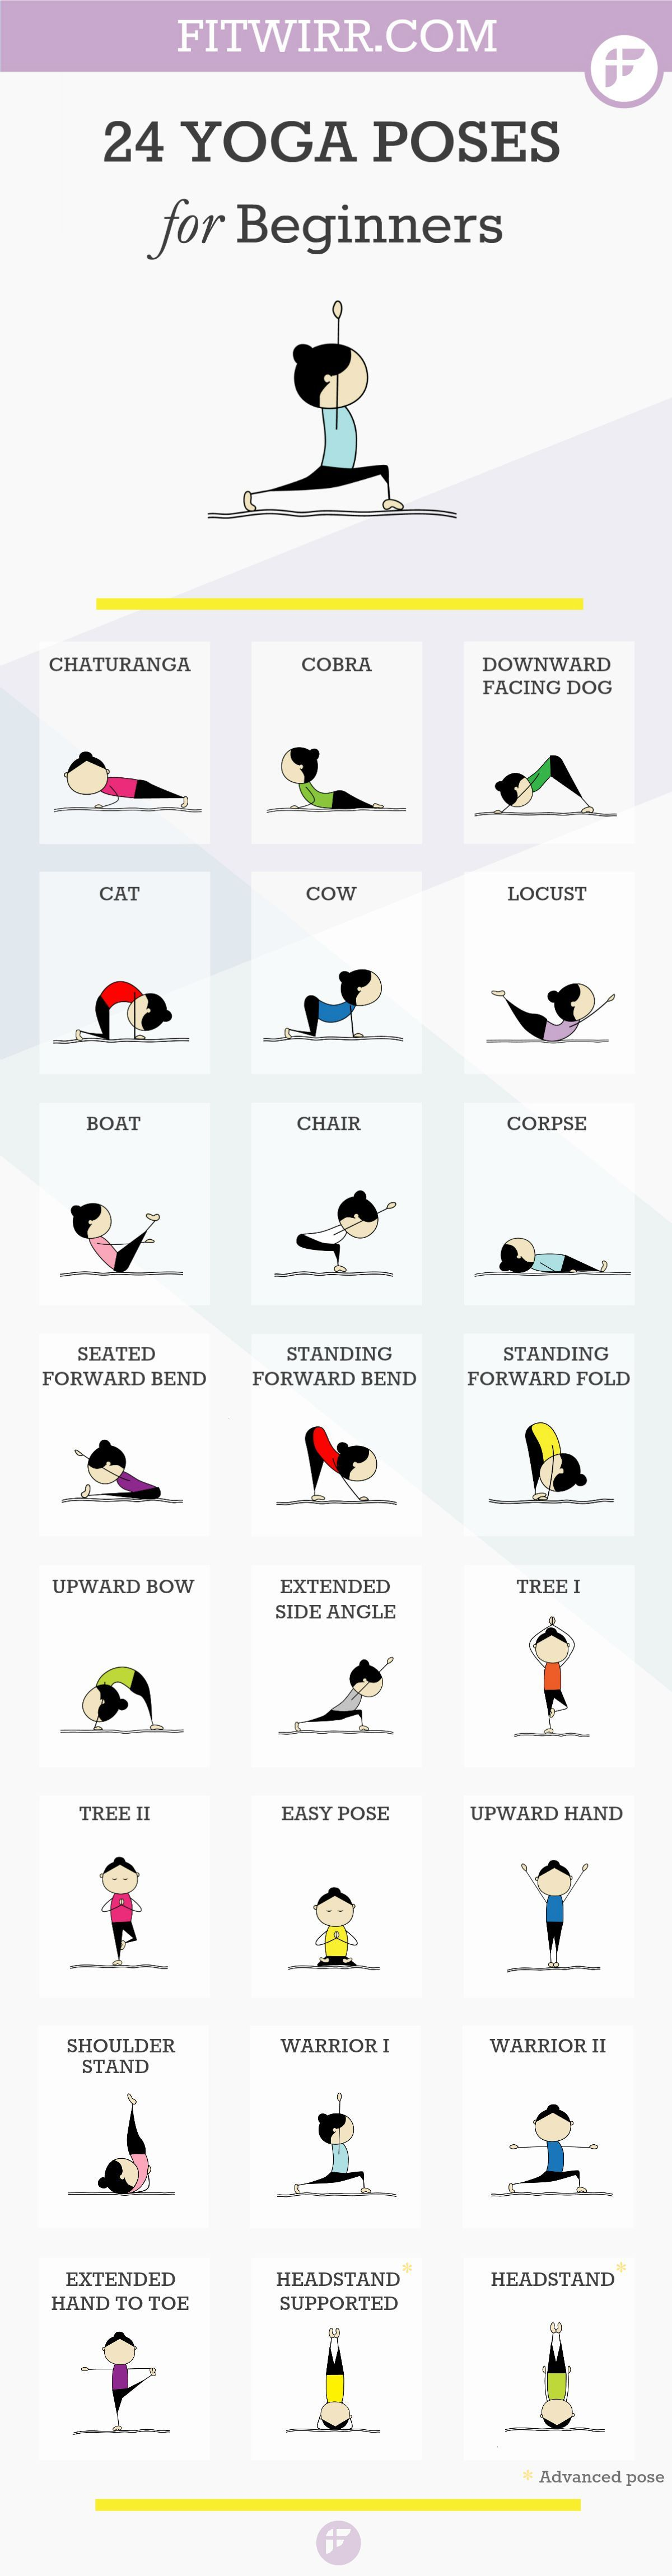 24 Yoga Poses For Beginners Pictures, Photos, and Images ...